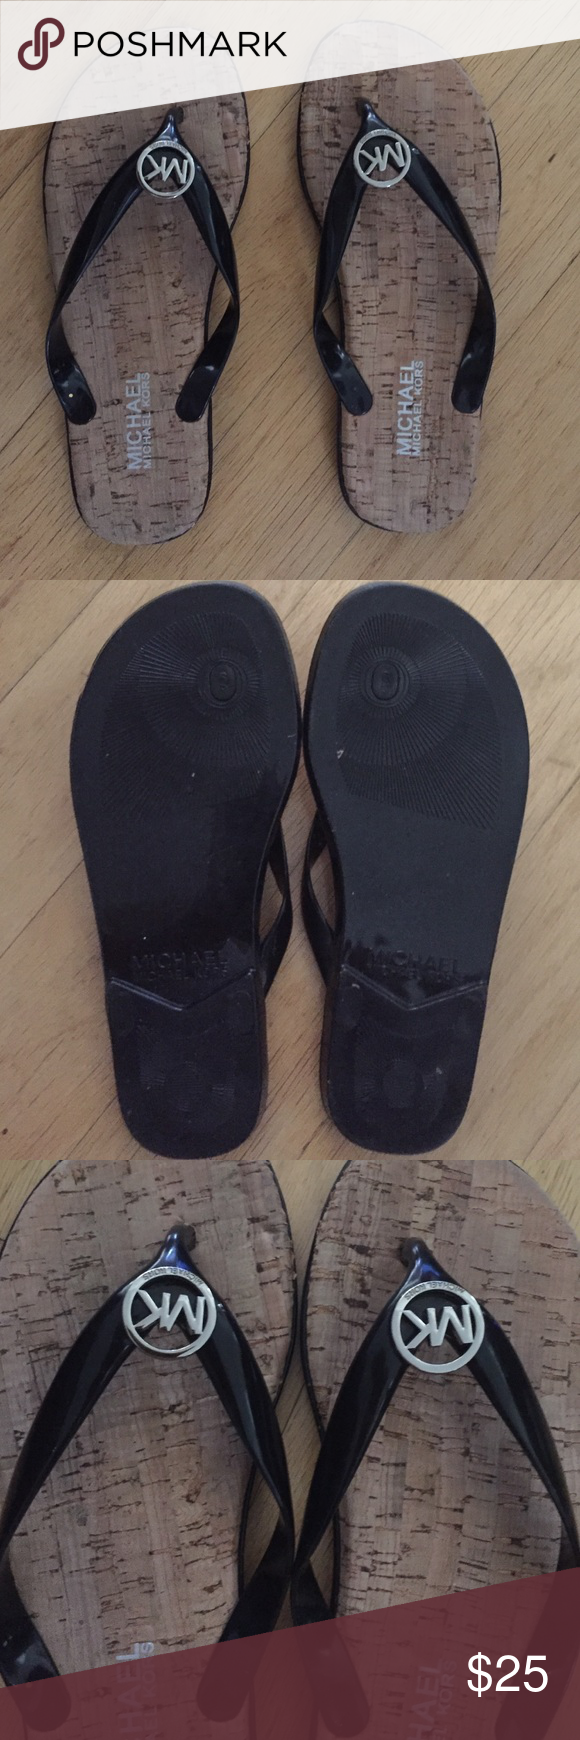 Michael kors size 6 sandals Worn 2x like new condition. Black patent black with silver MK hardware Michael Kors Shoes Sandals